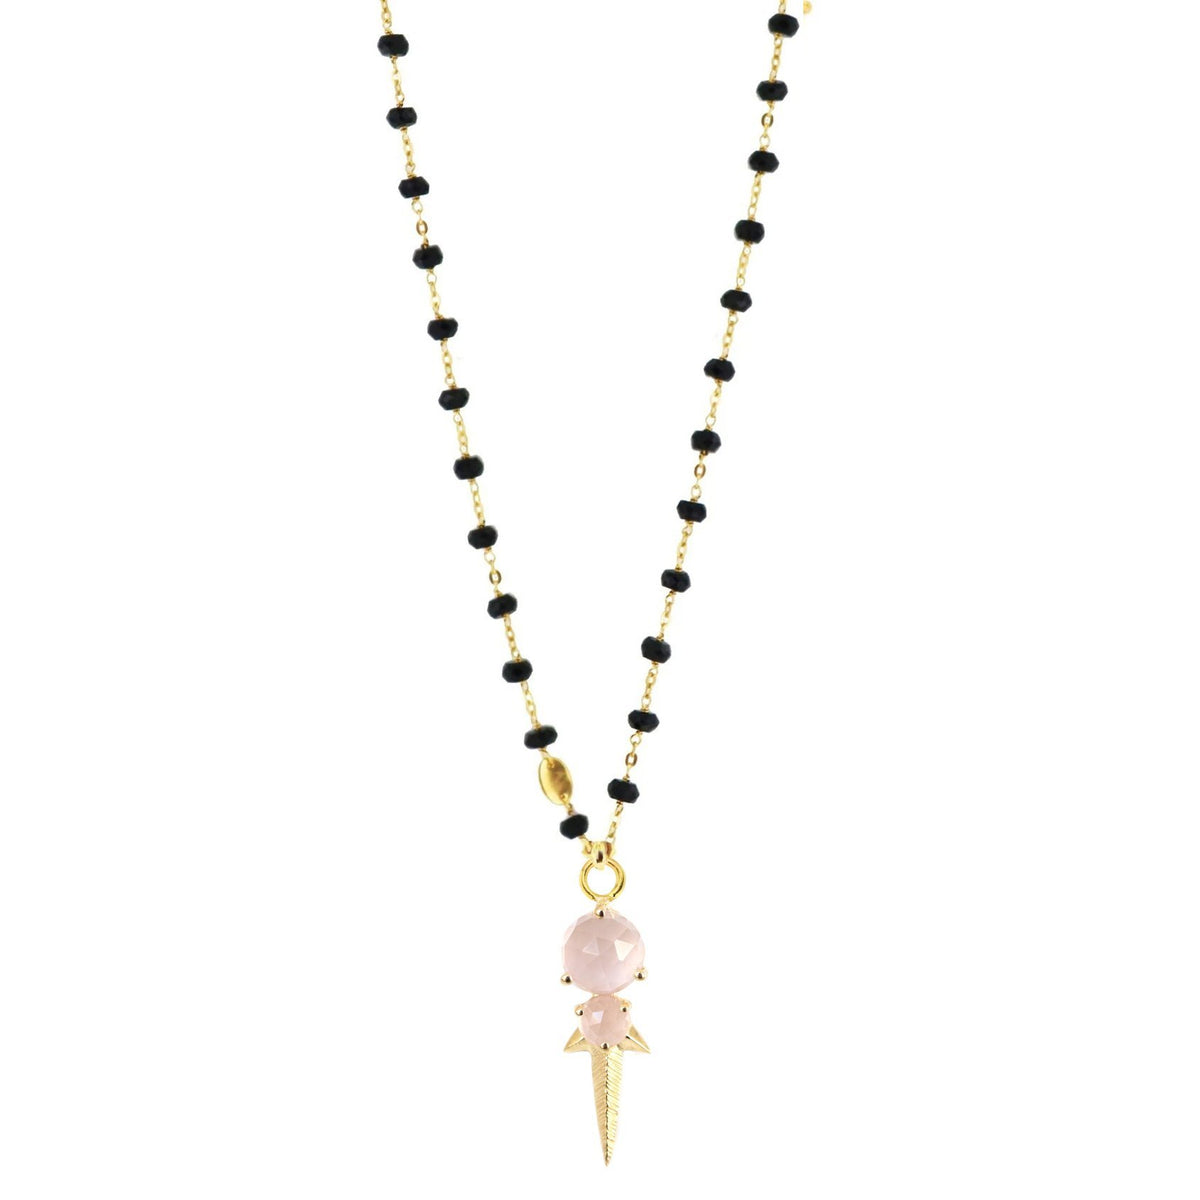 WONDER FALLING STAR ICON - PINK QUARTZ & GOLD - SO PRETTY CARA COTTER